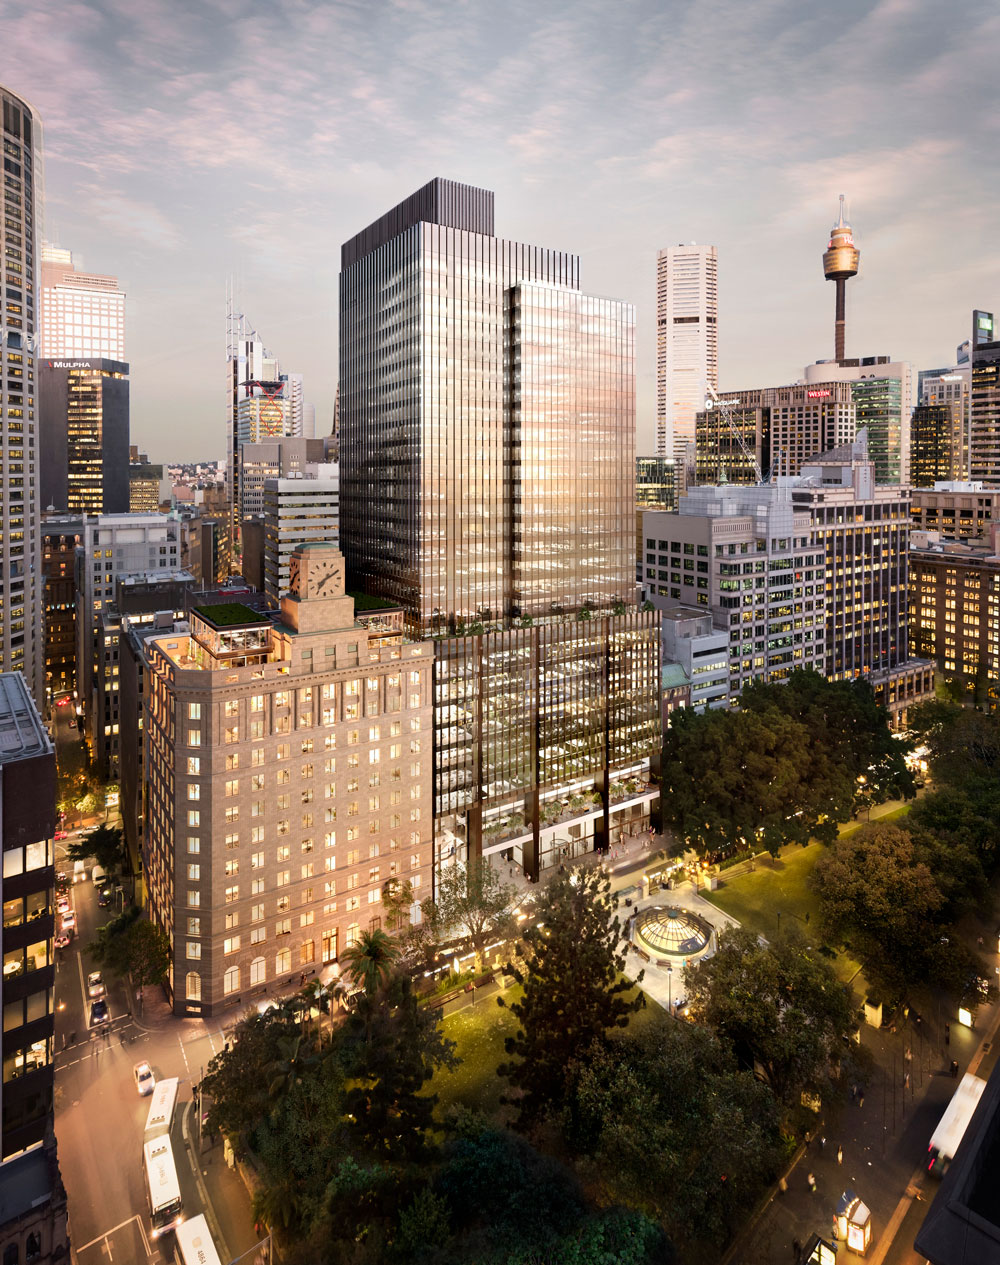 The completion of the 60,000sq m Brookfield Place pushed vacancy rates above 13pc in Sydney's CBD.